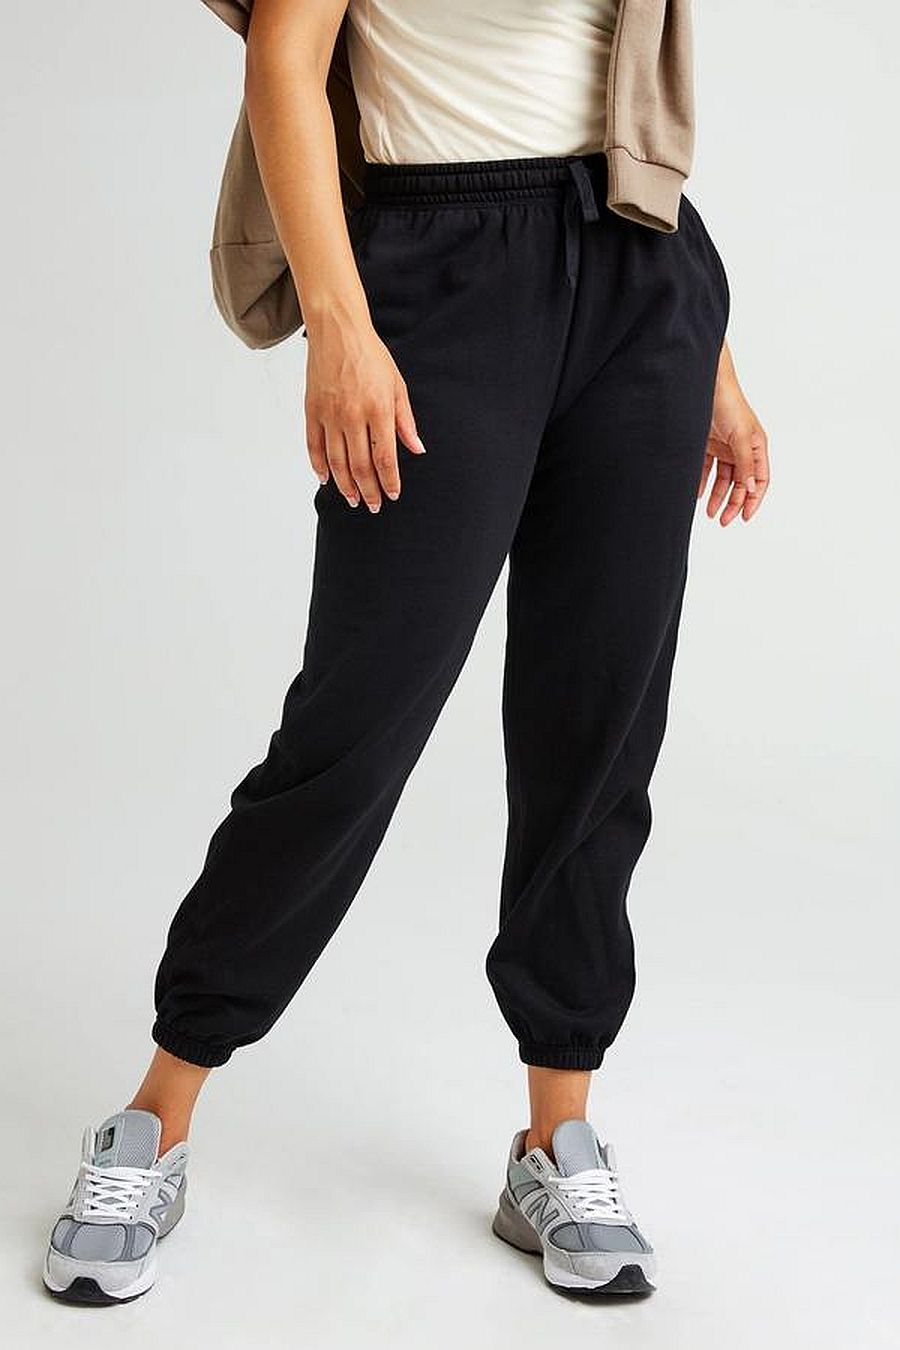 Richer Poorer Recycled Fleece Sweatpant - Black